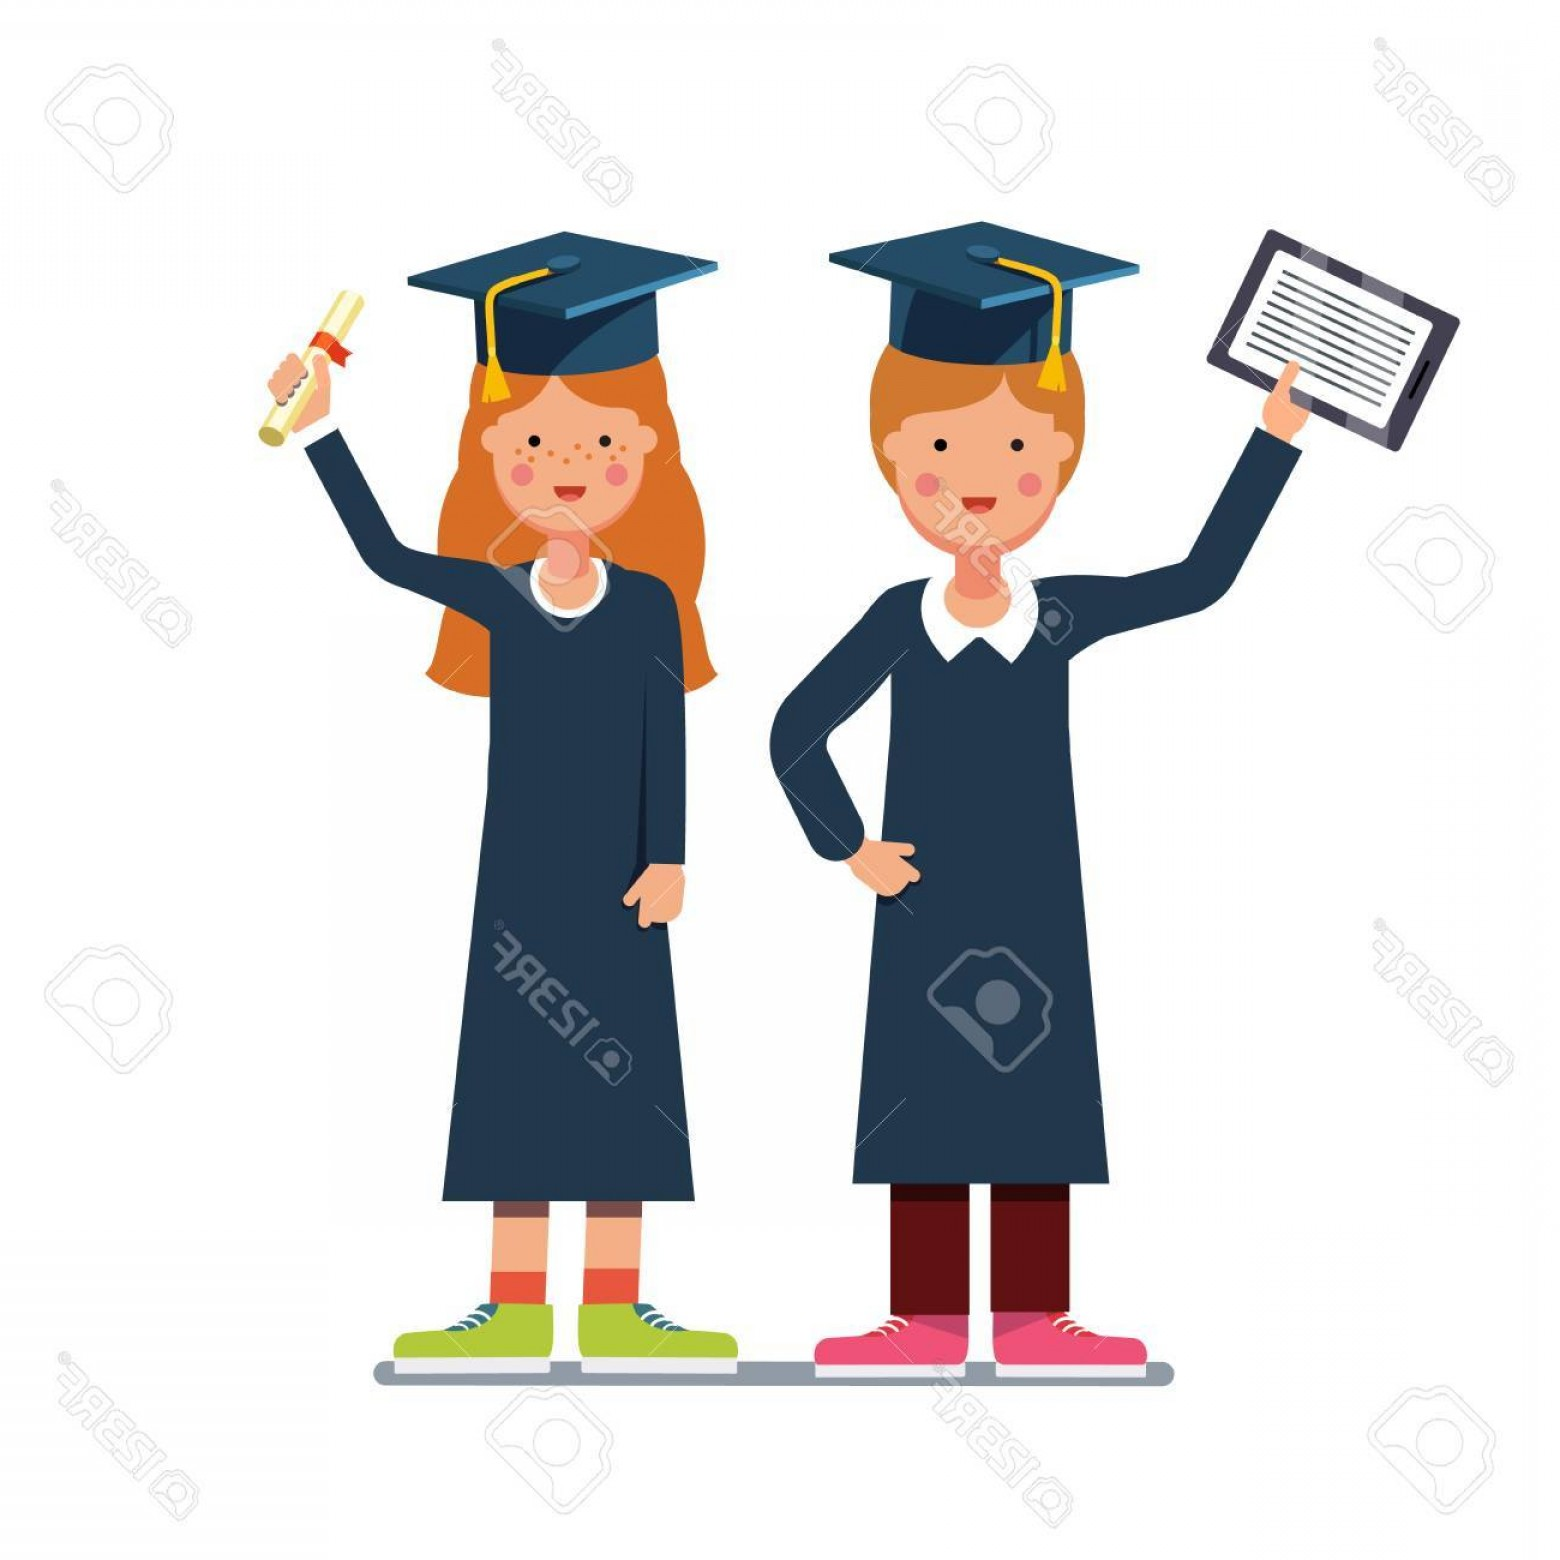 Standing Diploma Vector: Photostock Vector Graduated Students Boy And Girl In Gowns And Mortar Boards Standing With Diploma And Tablet Computer